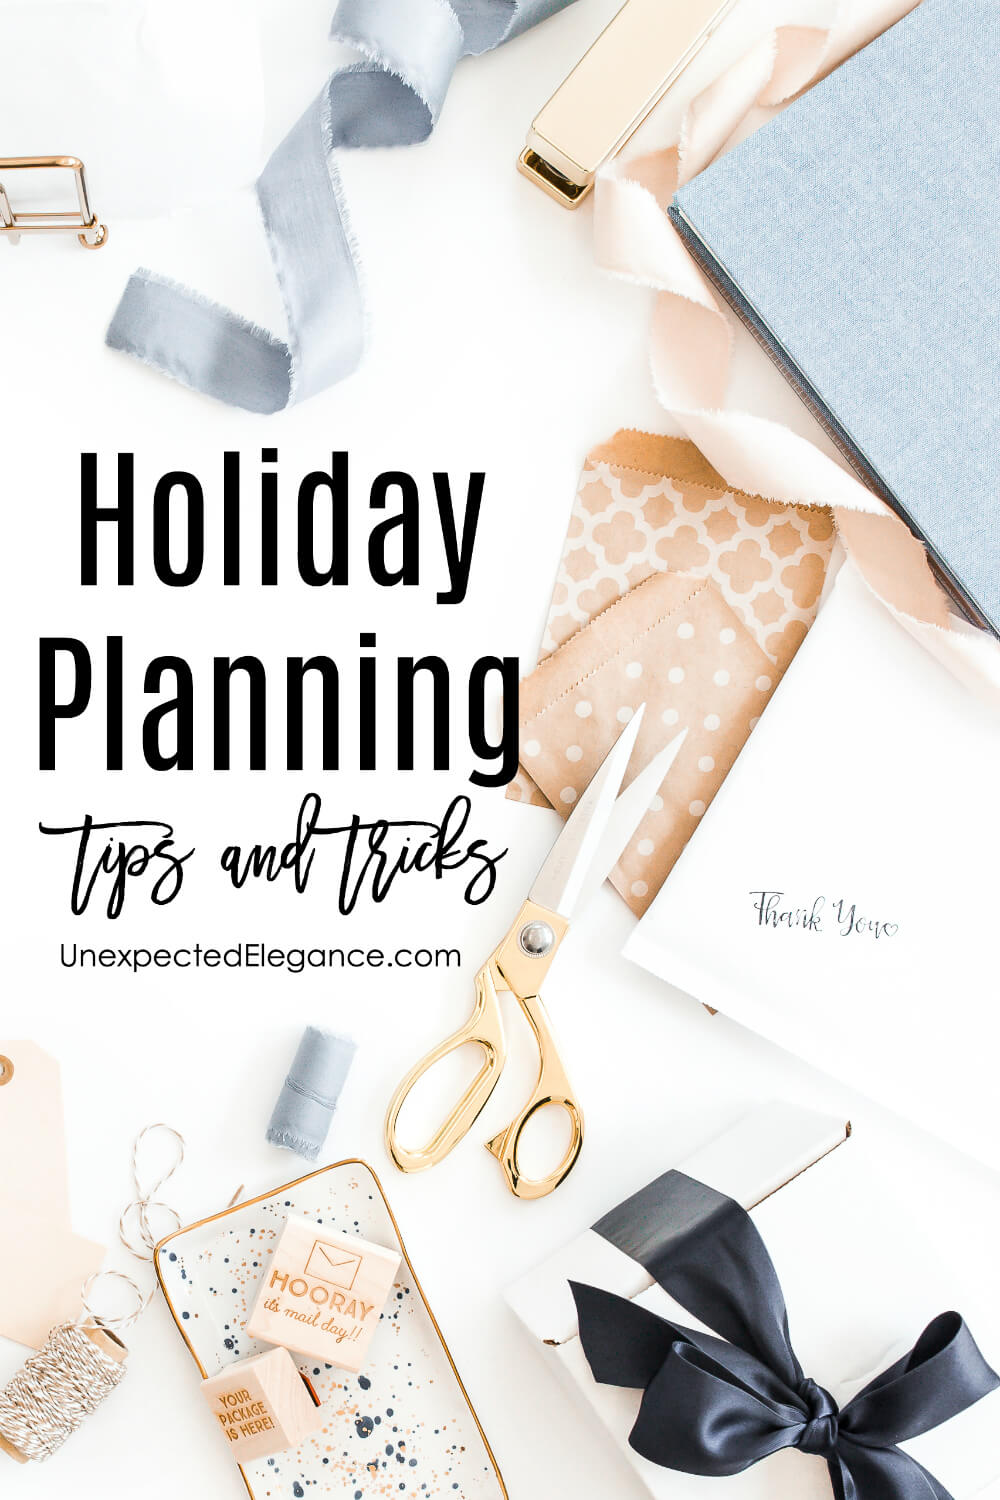 Get tips and tricks for saving time and money this holiday season. Also download a FREE holiday planning guide.